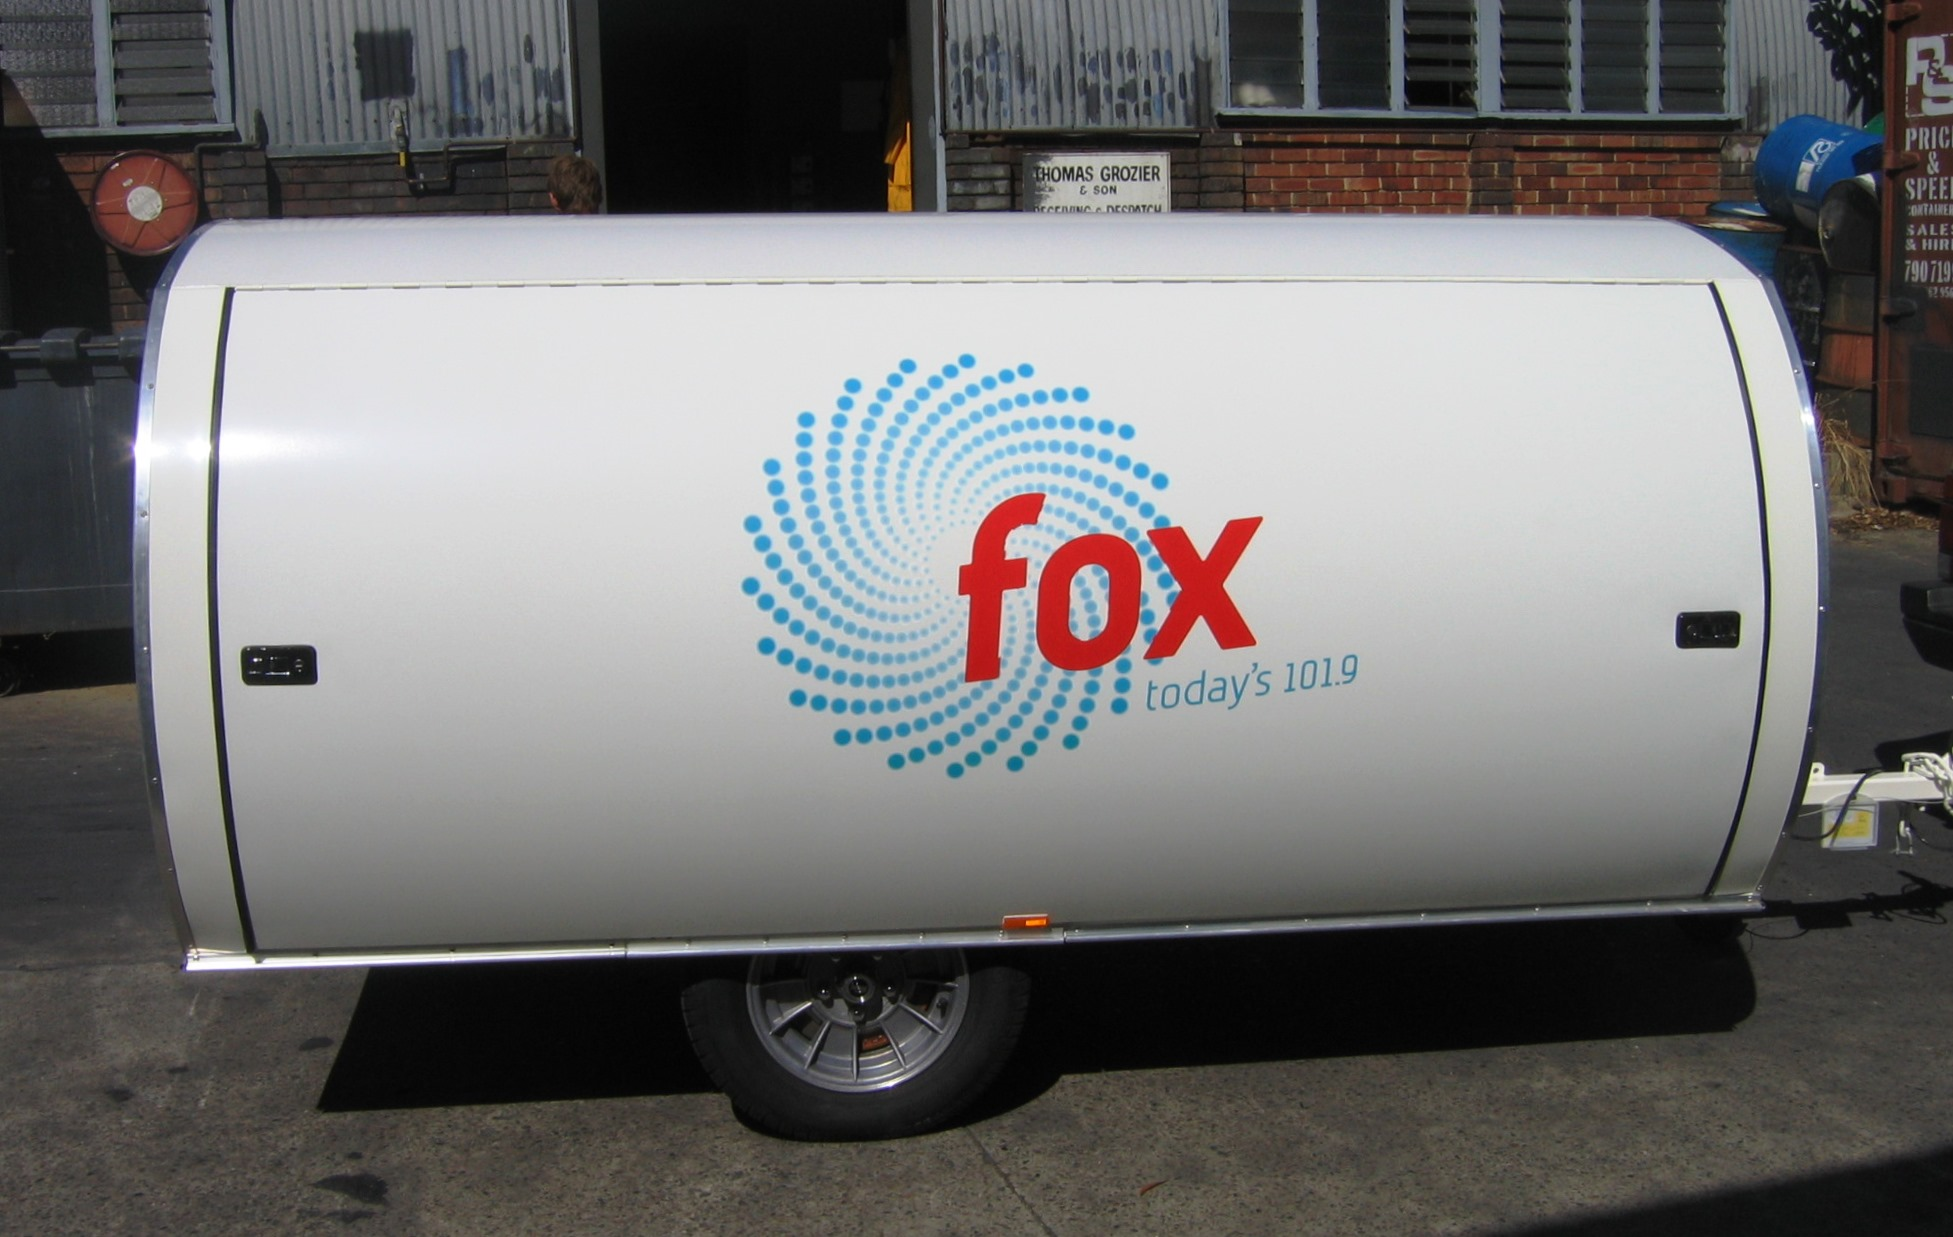 Fleet graphics. Fox 101.9 Austereo Melbourne trailer. Radio station promotions.